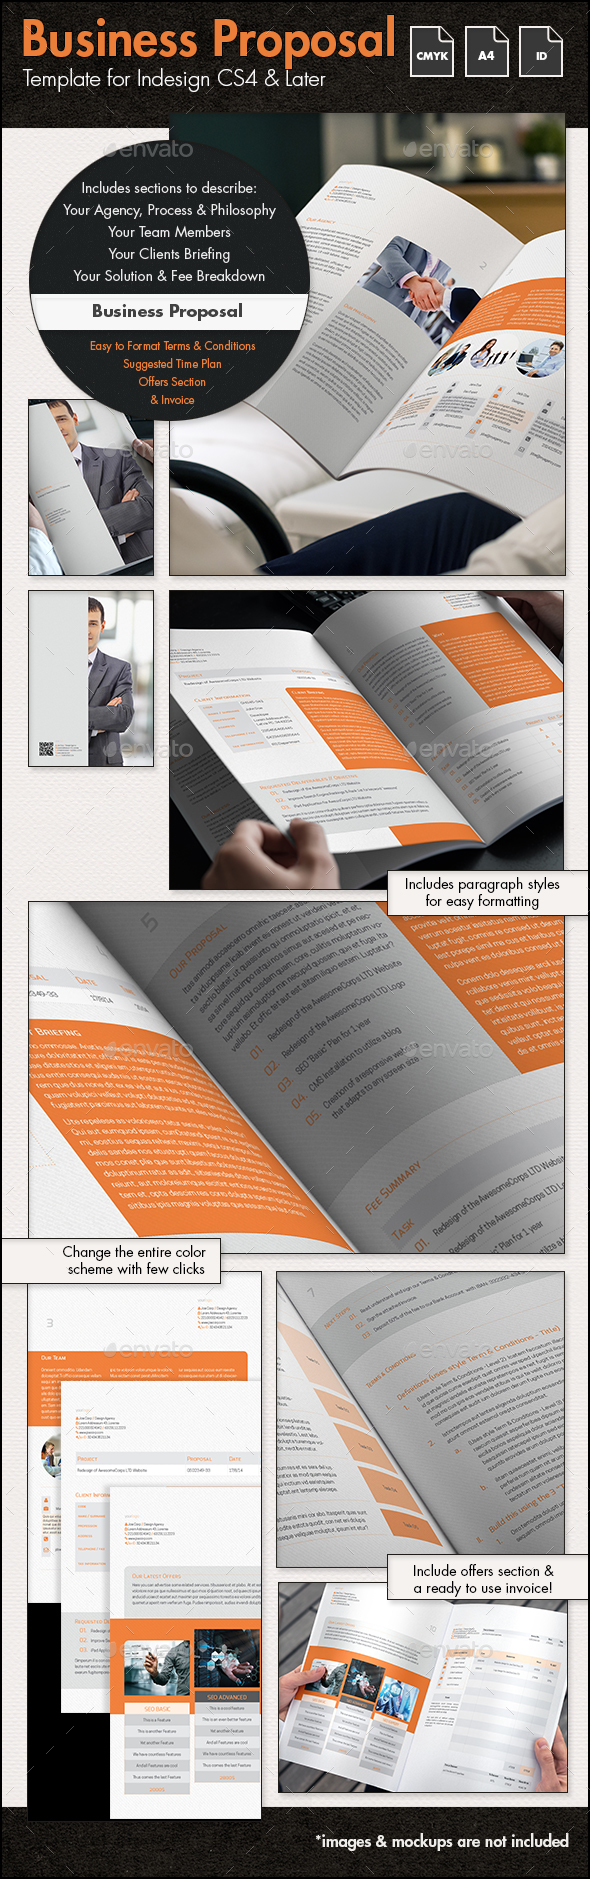 Business Proposal Template - A4 Portrait - Proposals & Invoices Stationery